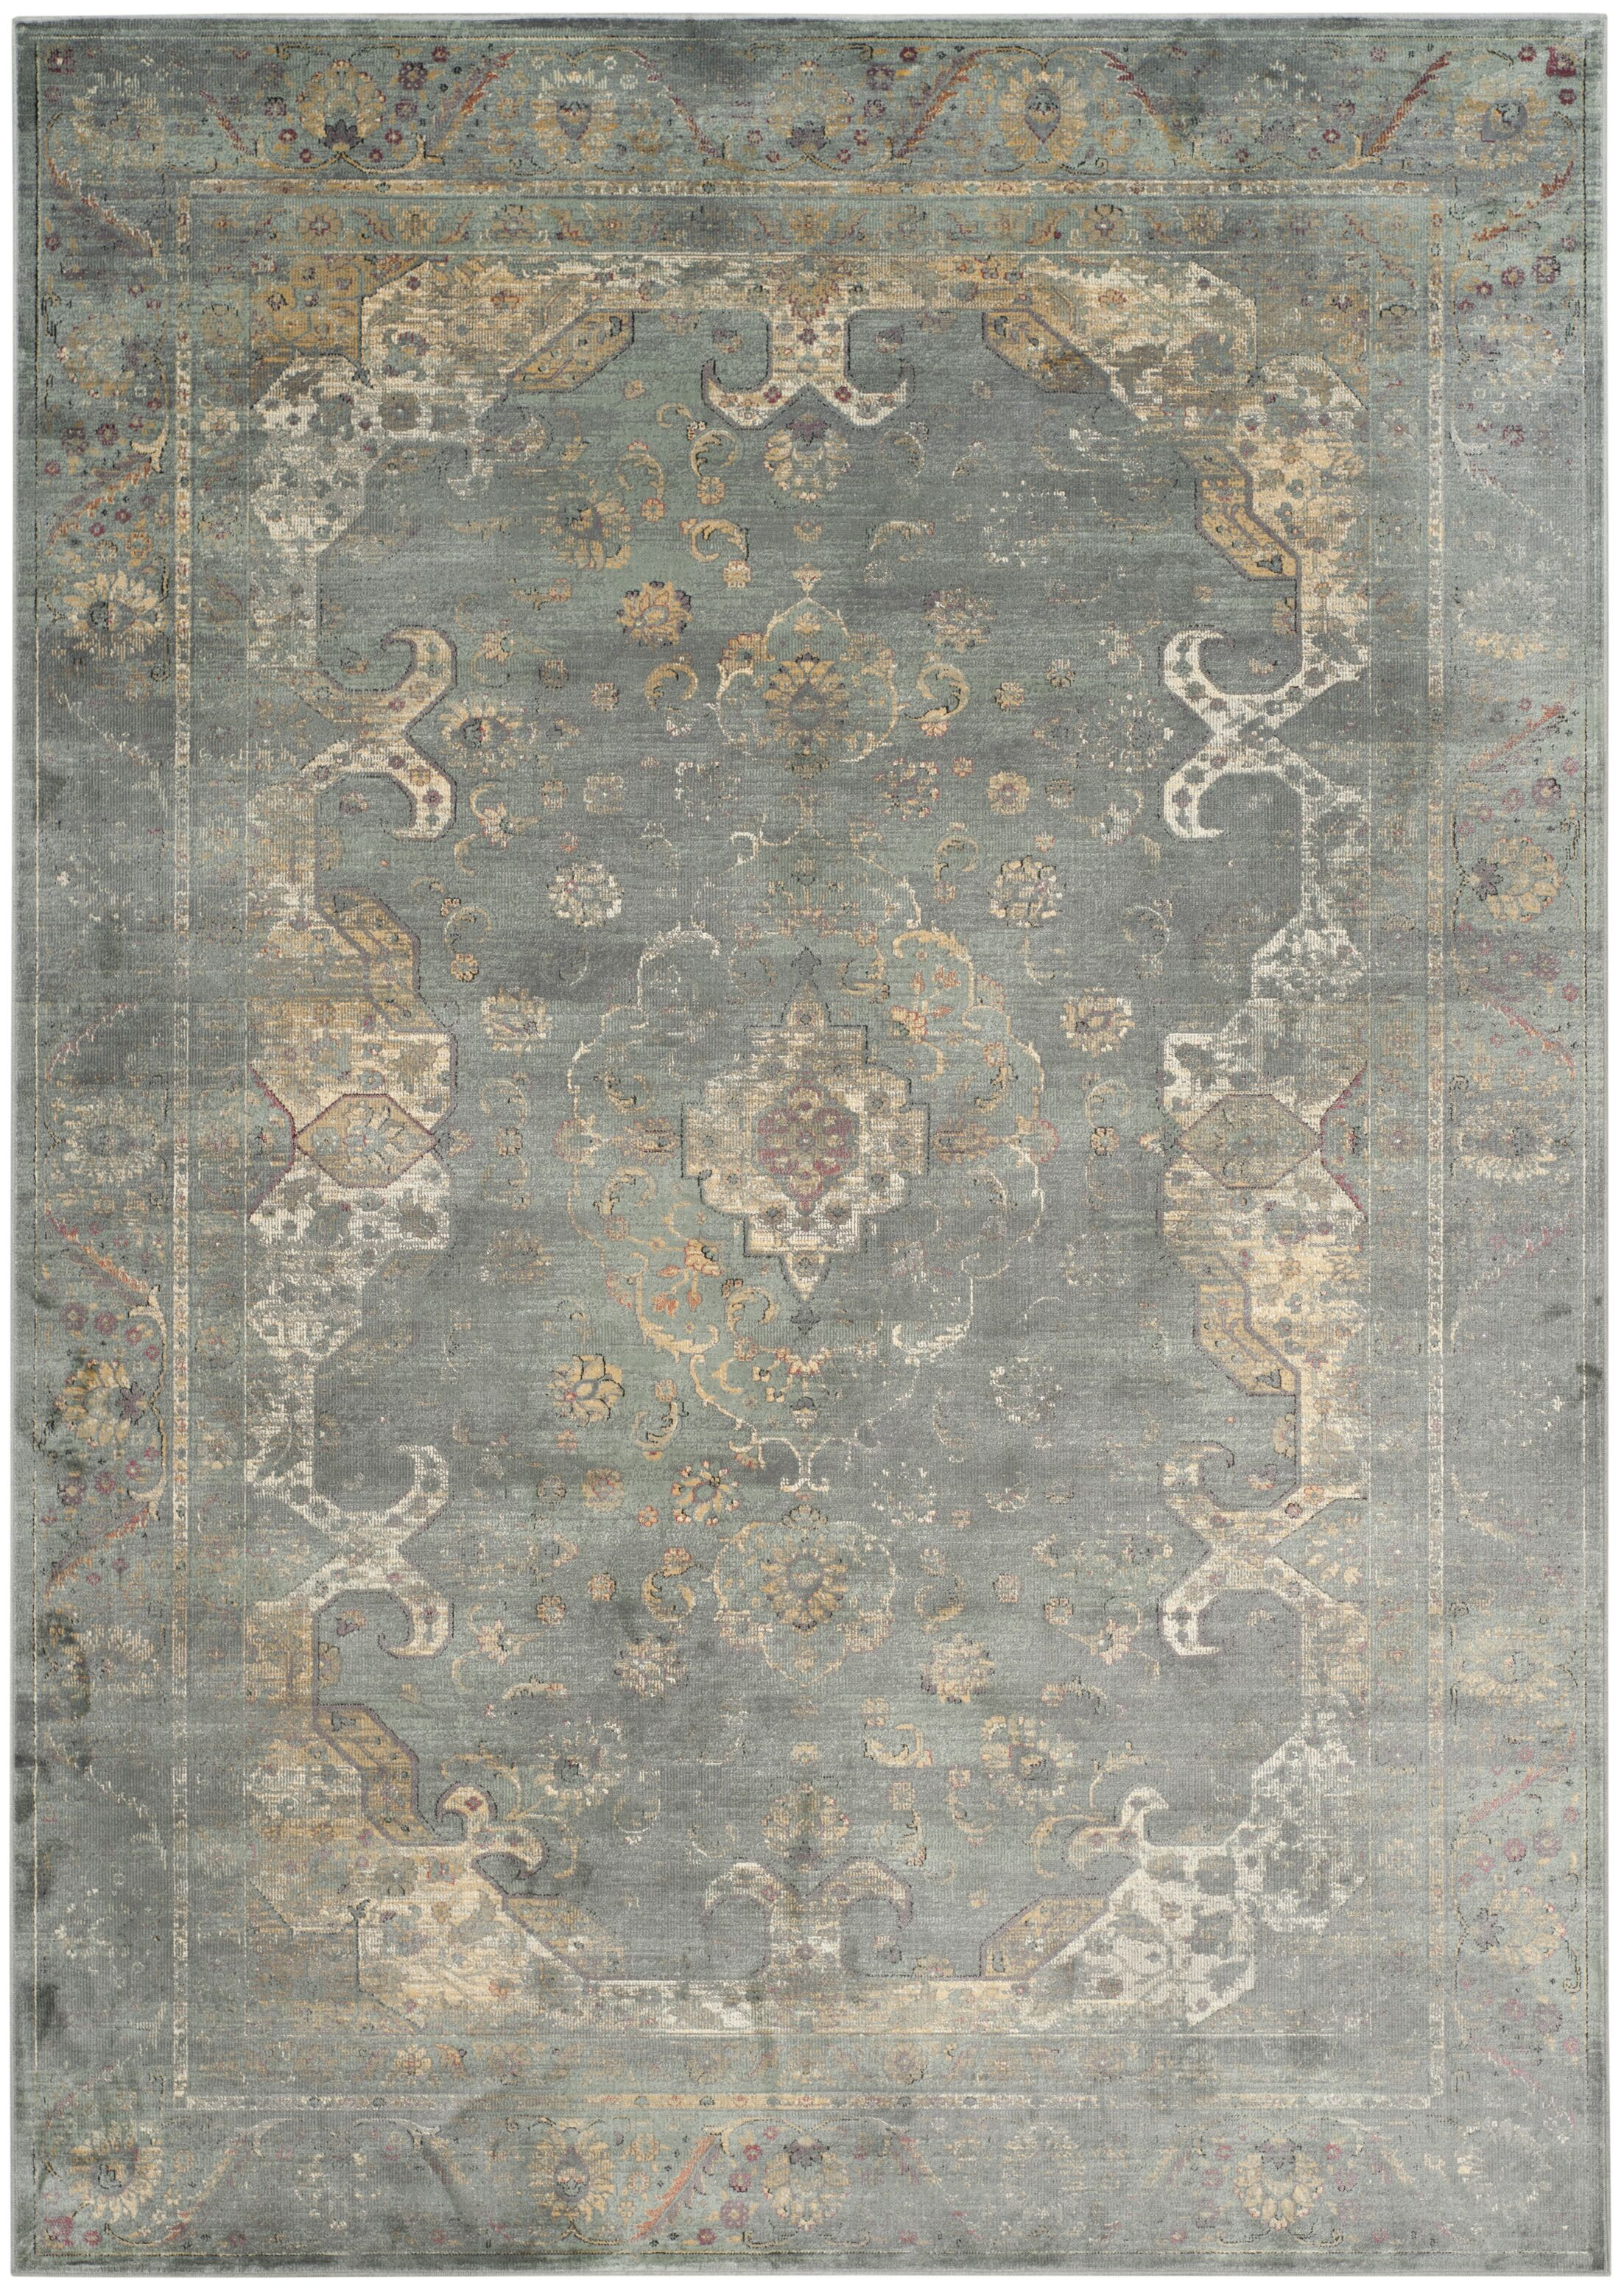 Obrien Gray Area Rug Rug Size: Rectangle 8' x 11'2